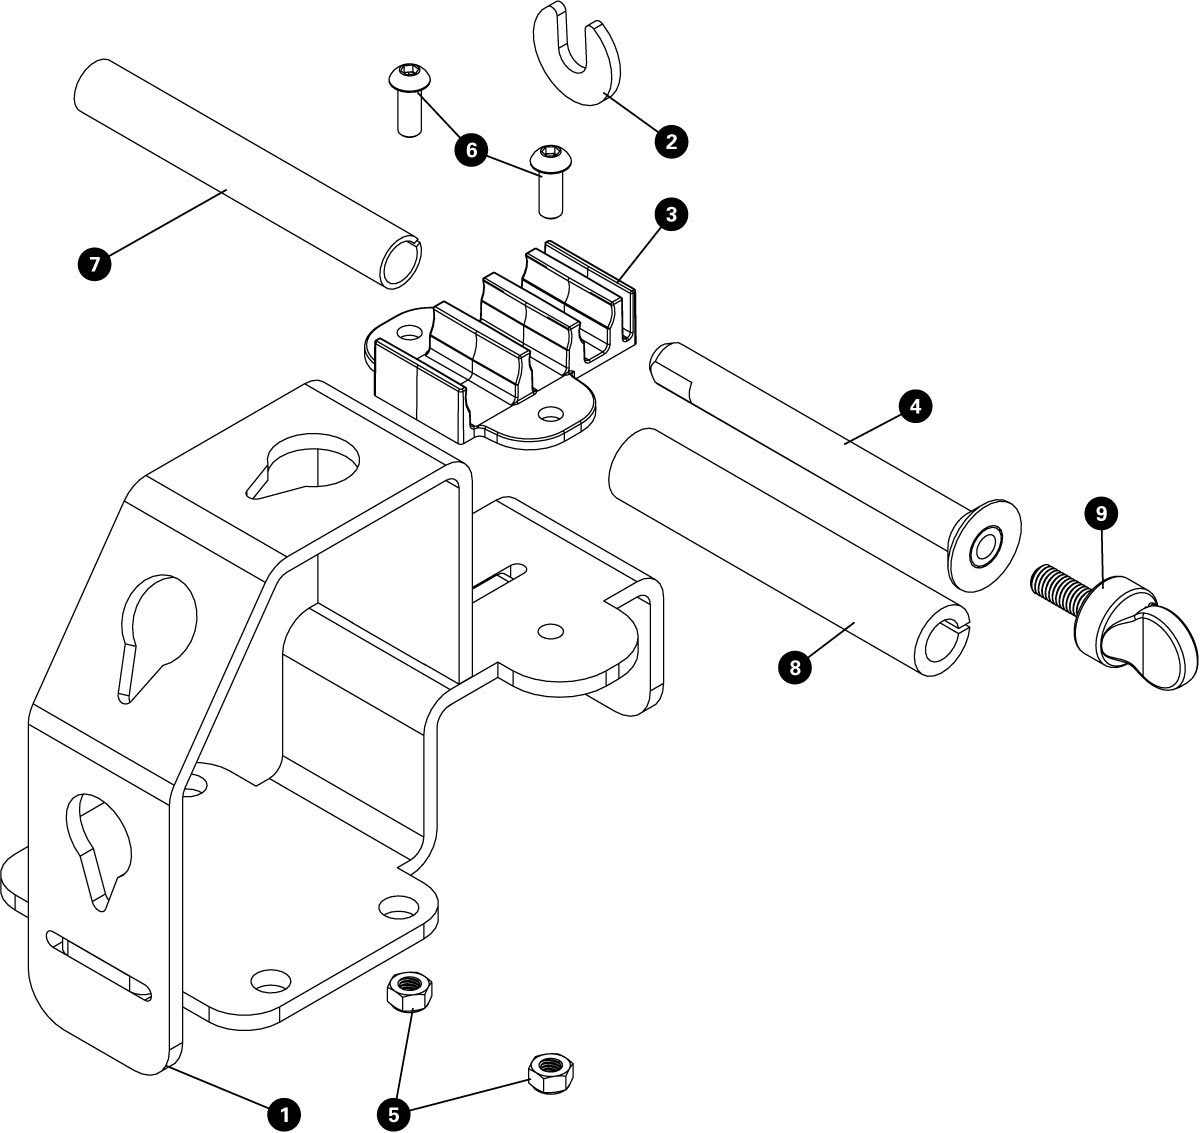 Parts diagram for WH-1 Wheel Holder, click to enlarge